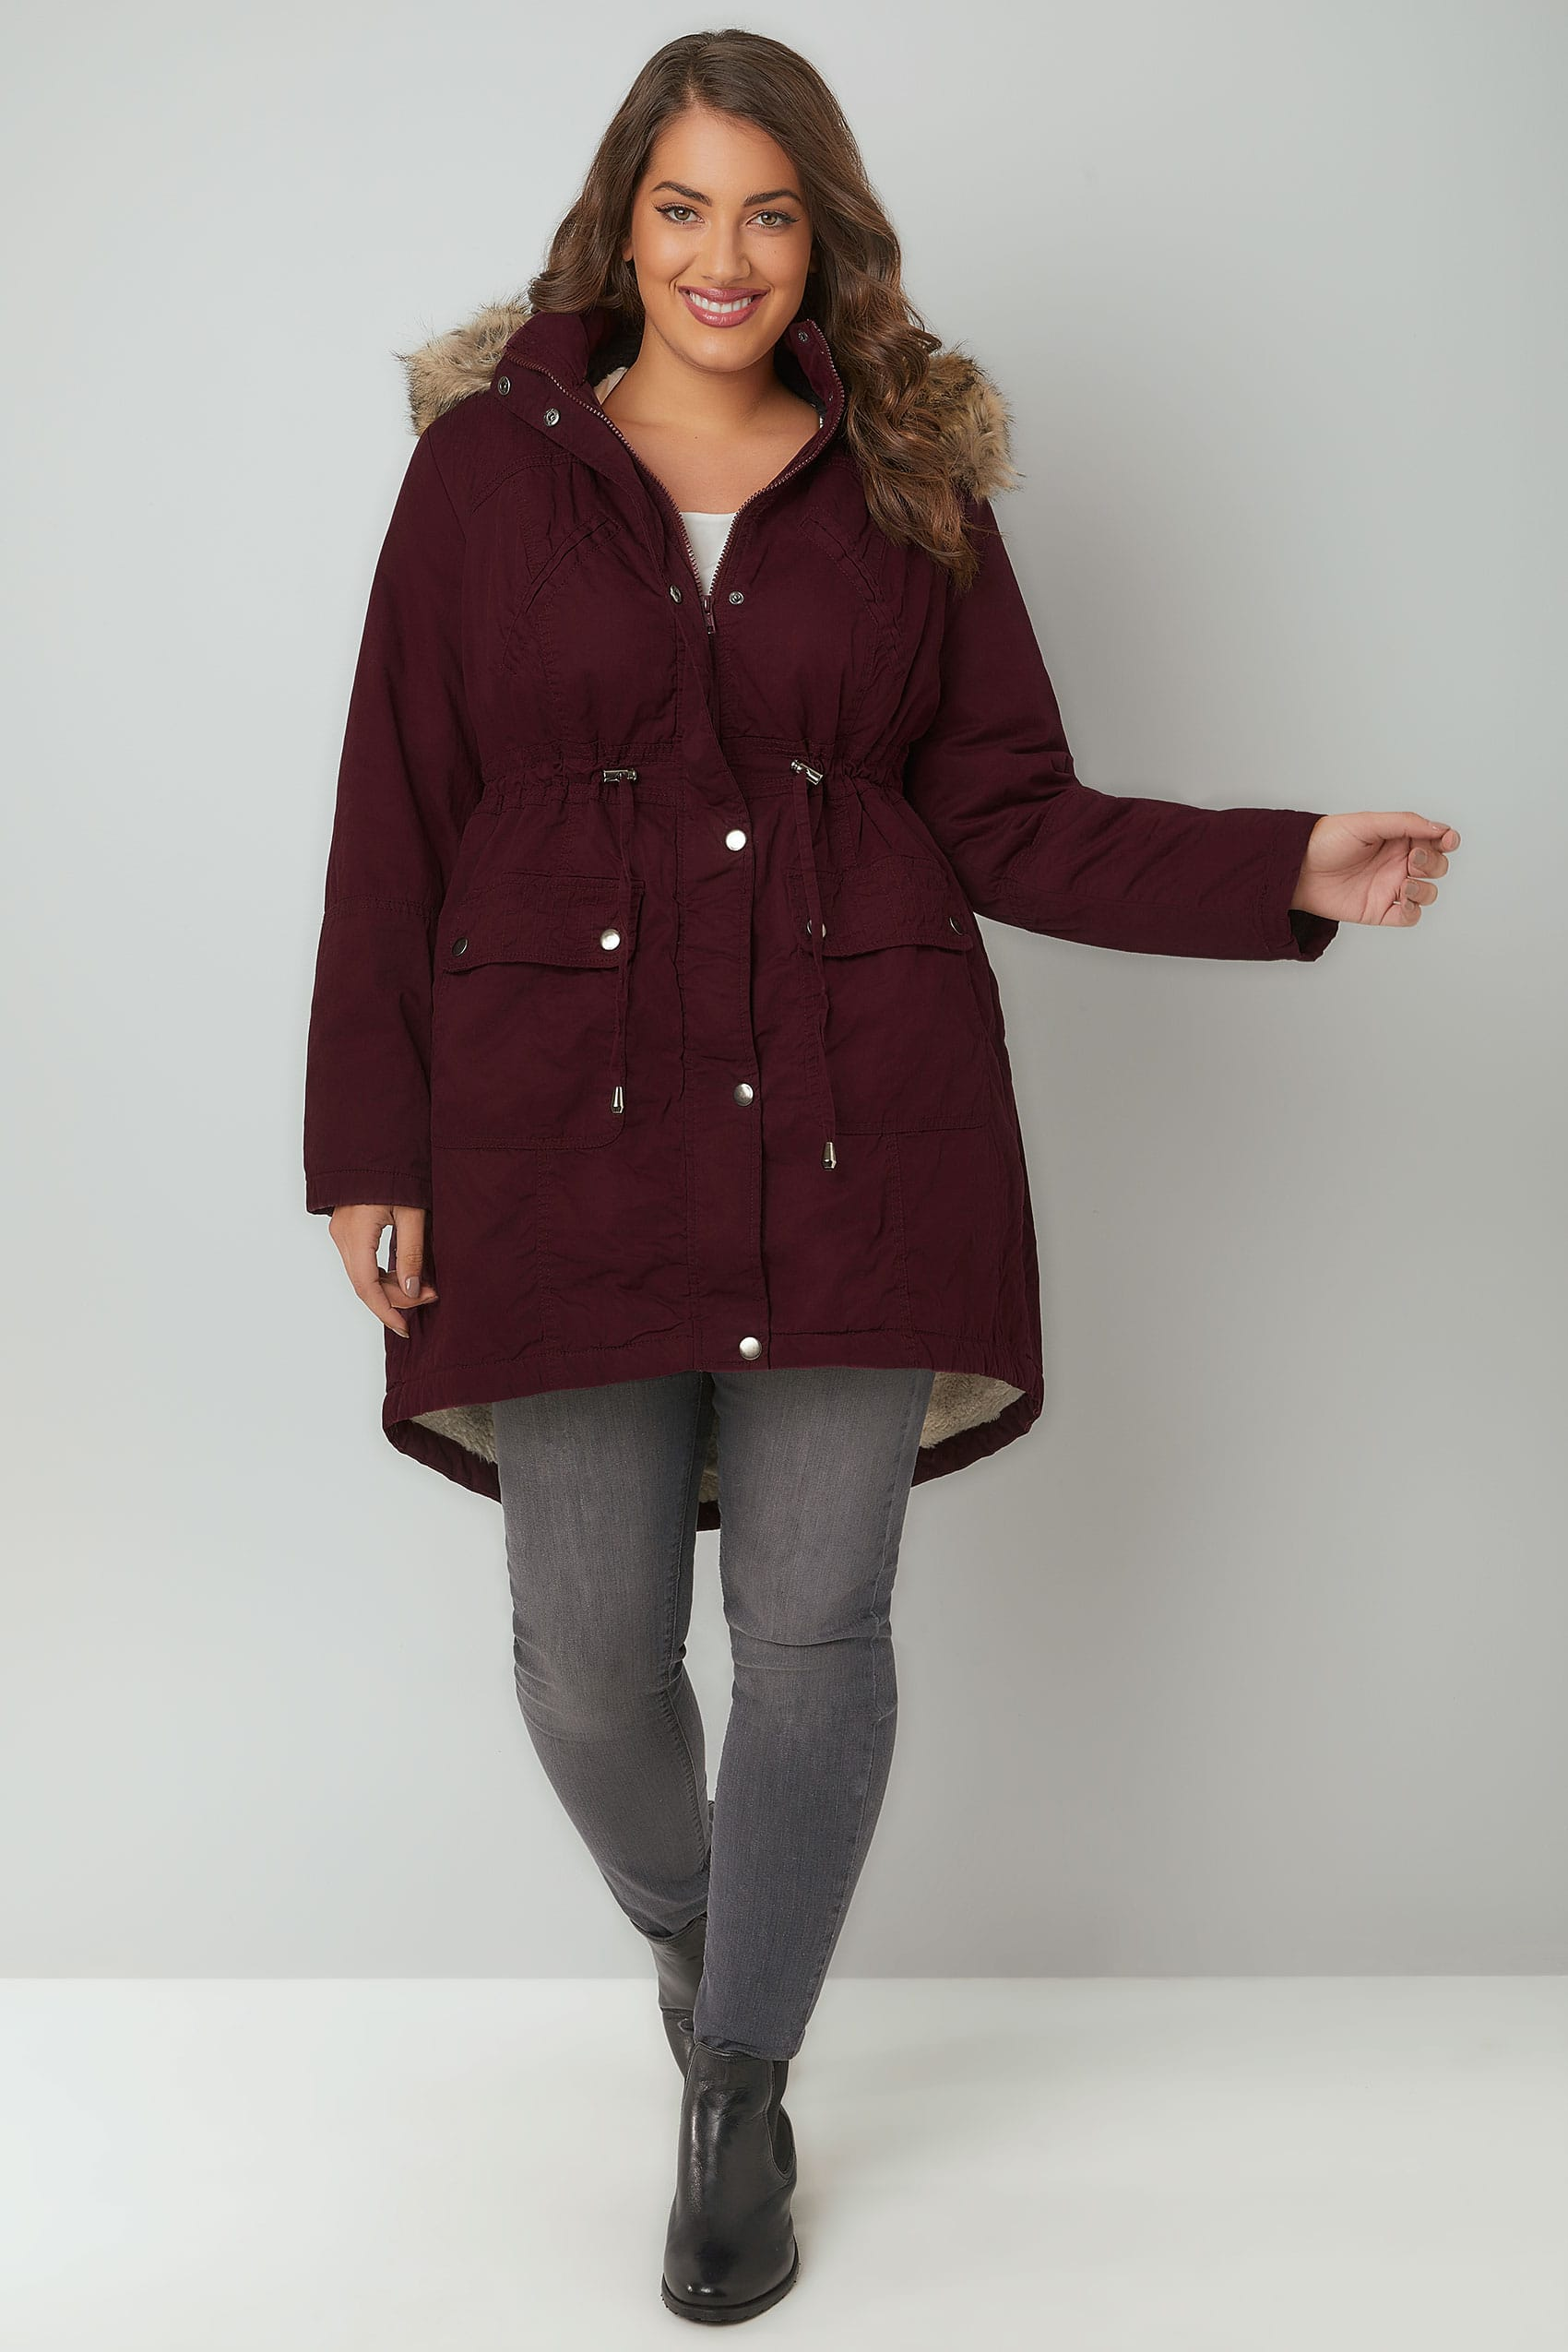 Burgundy Cotton Parka With Faux Fur Trim Hood, Plus size 16 to 36